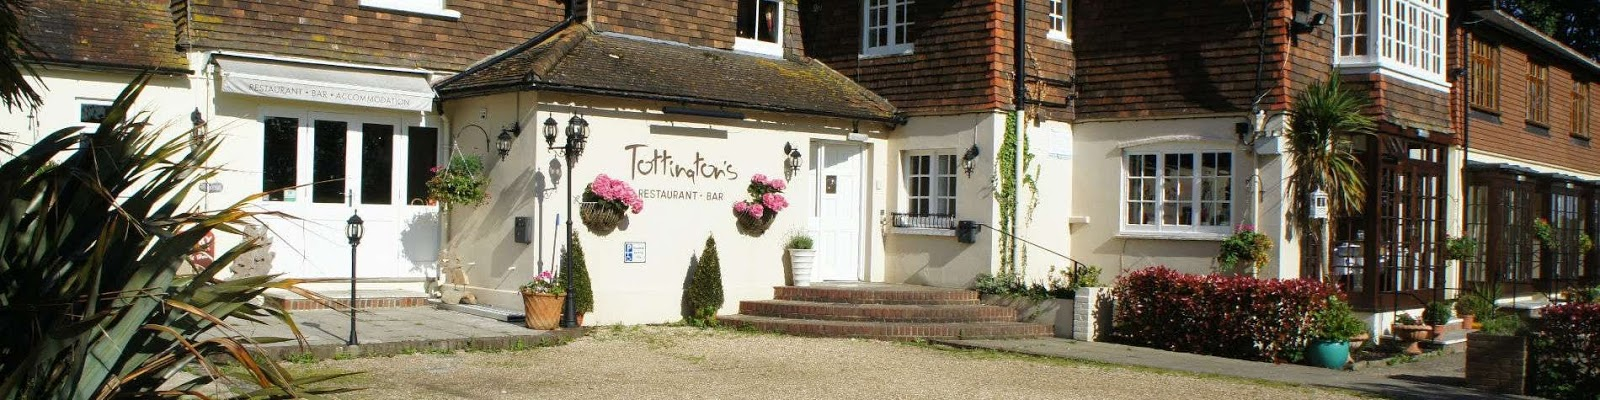 Restaurants West Sussex